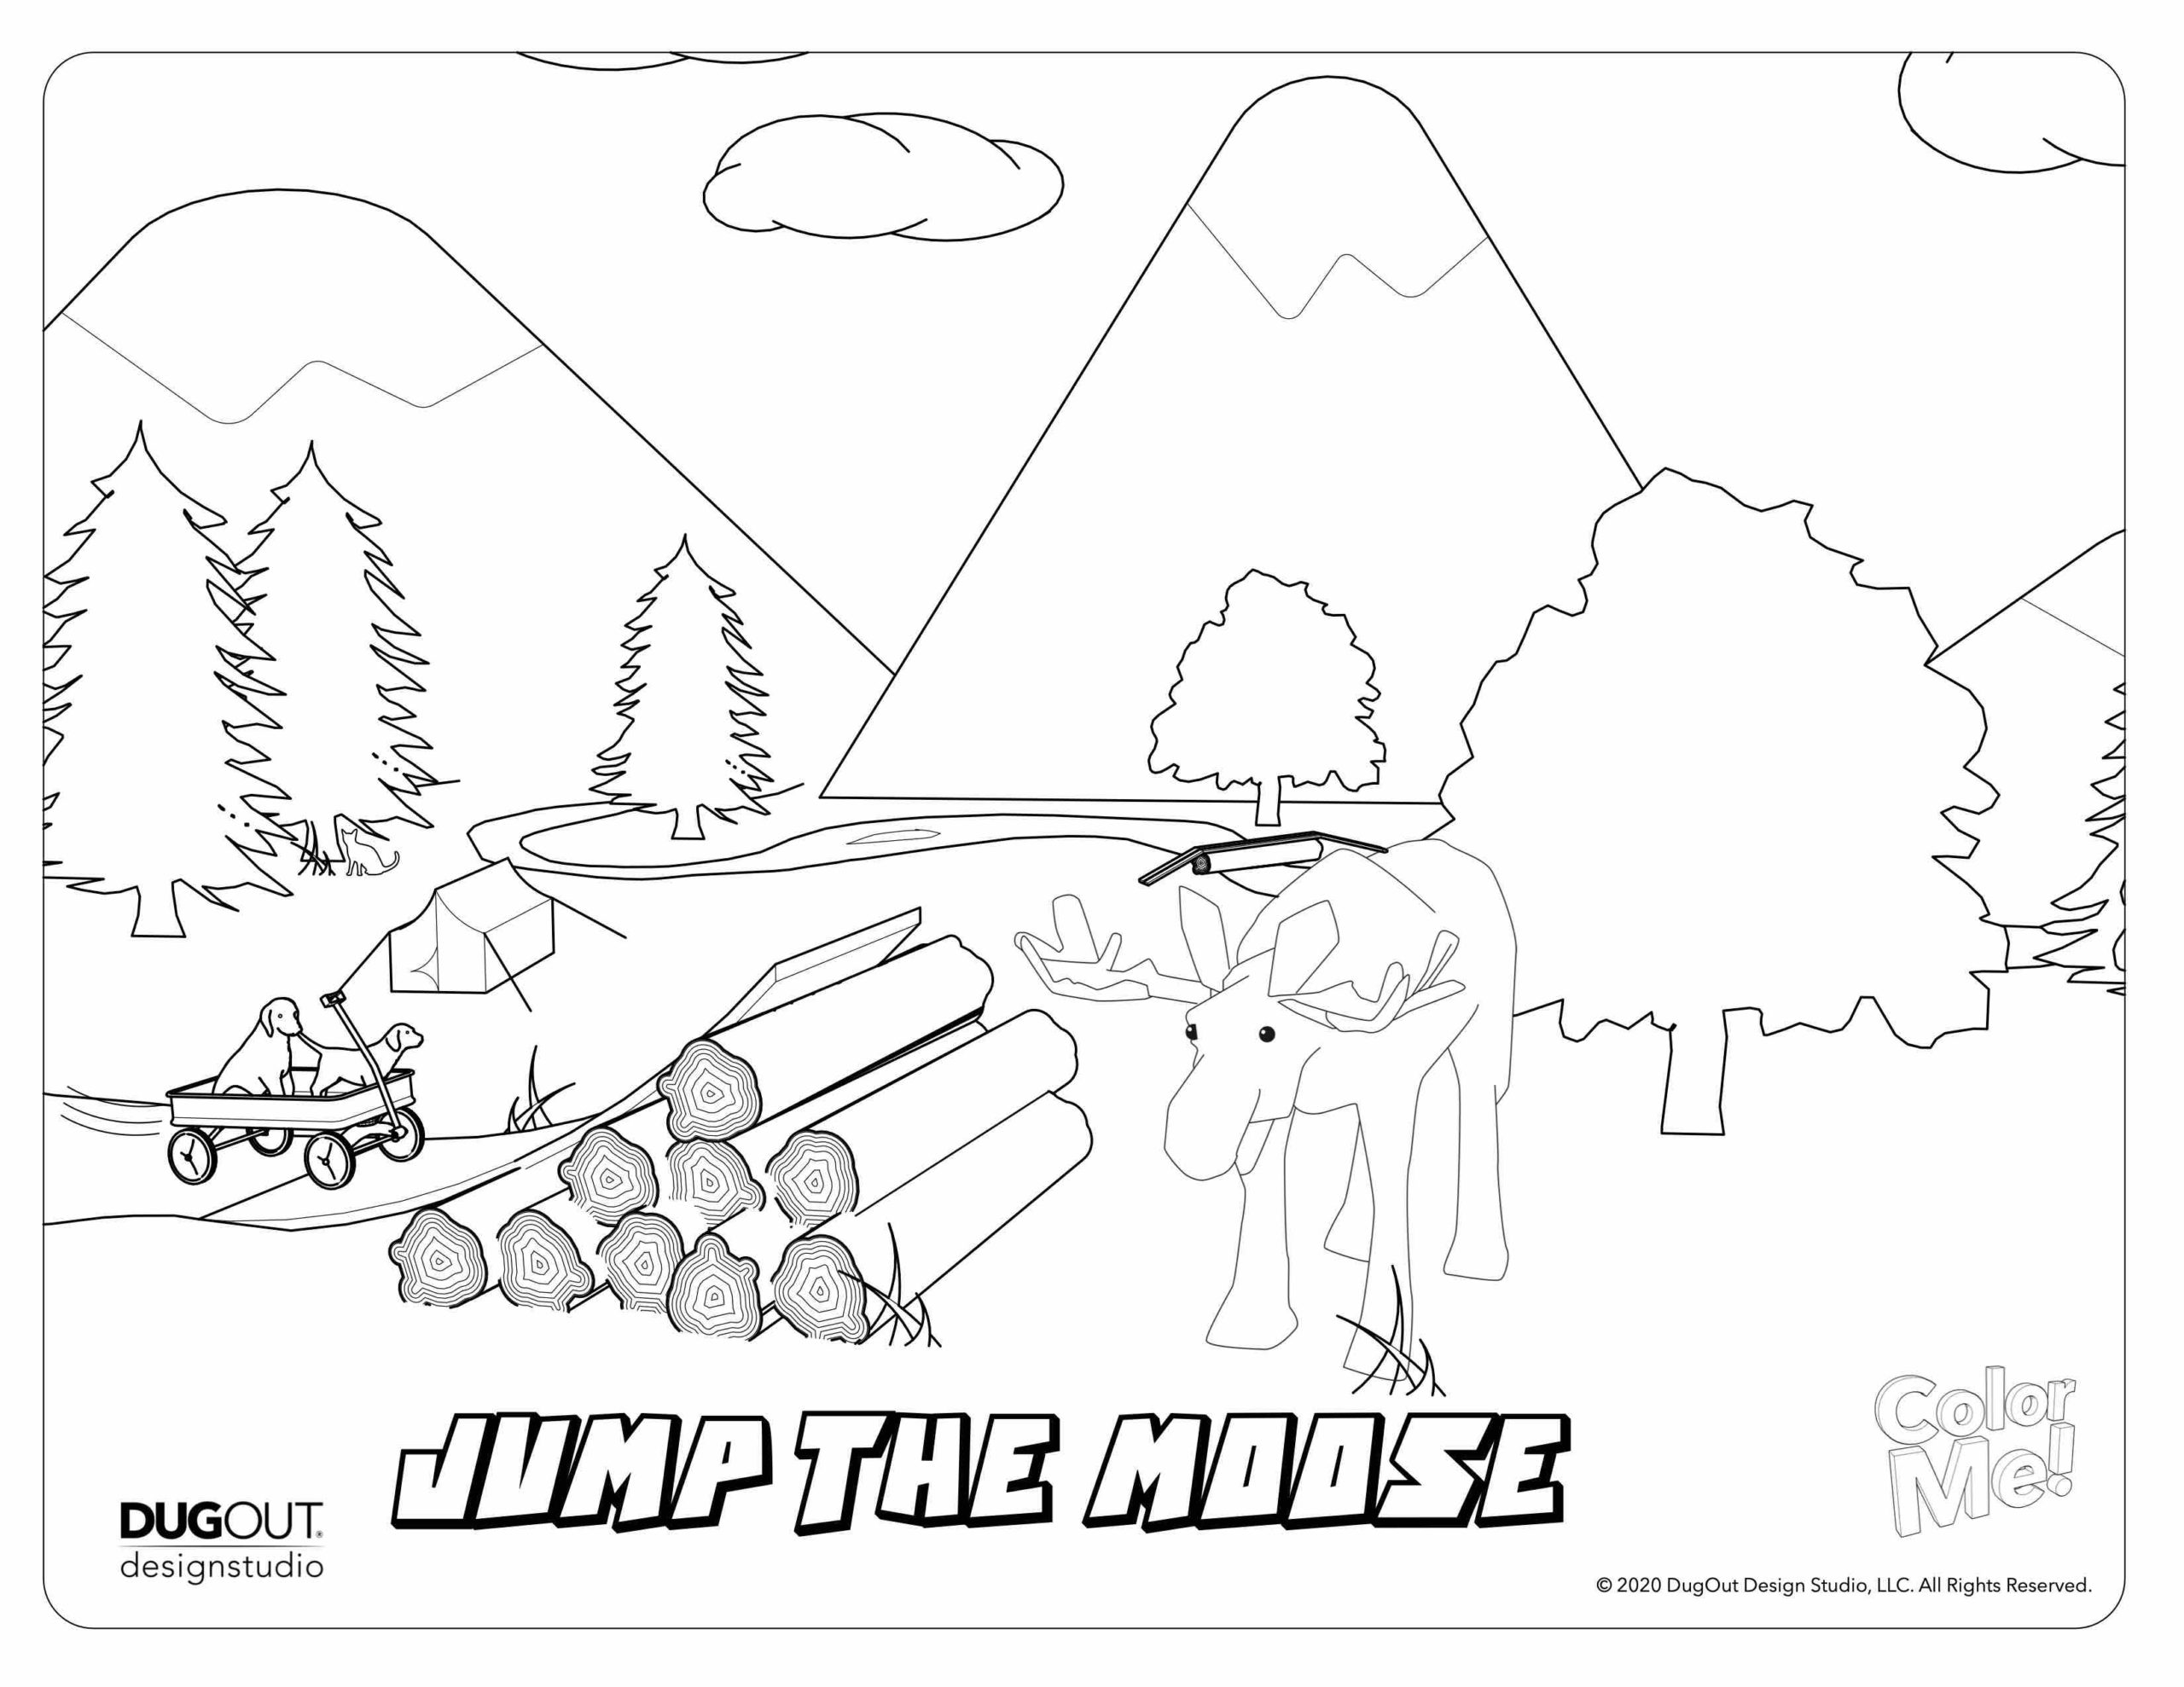 jump the moose coloring page with doggies in wagon